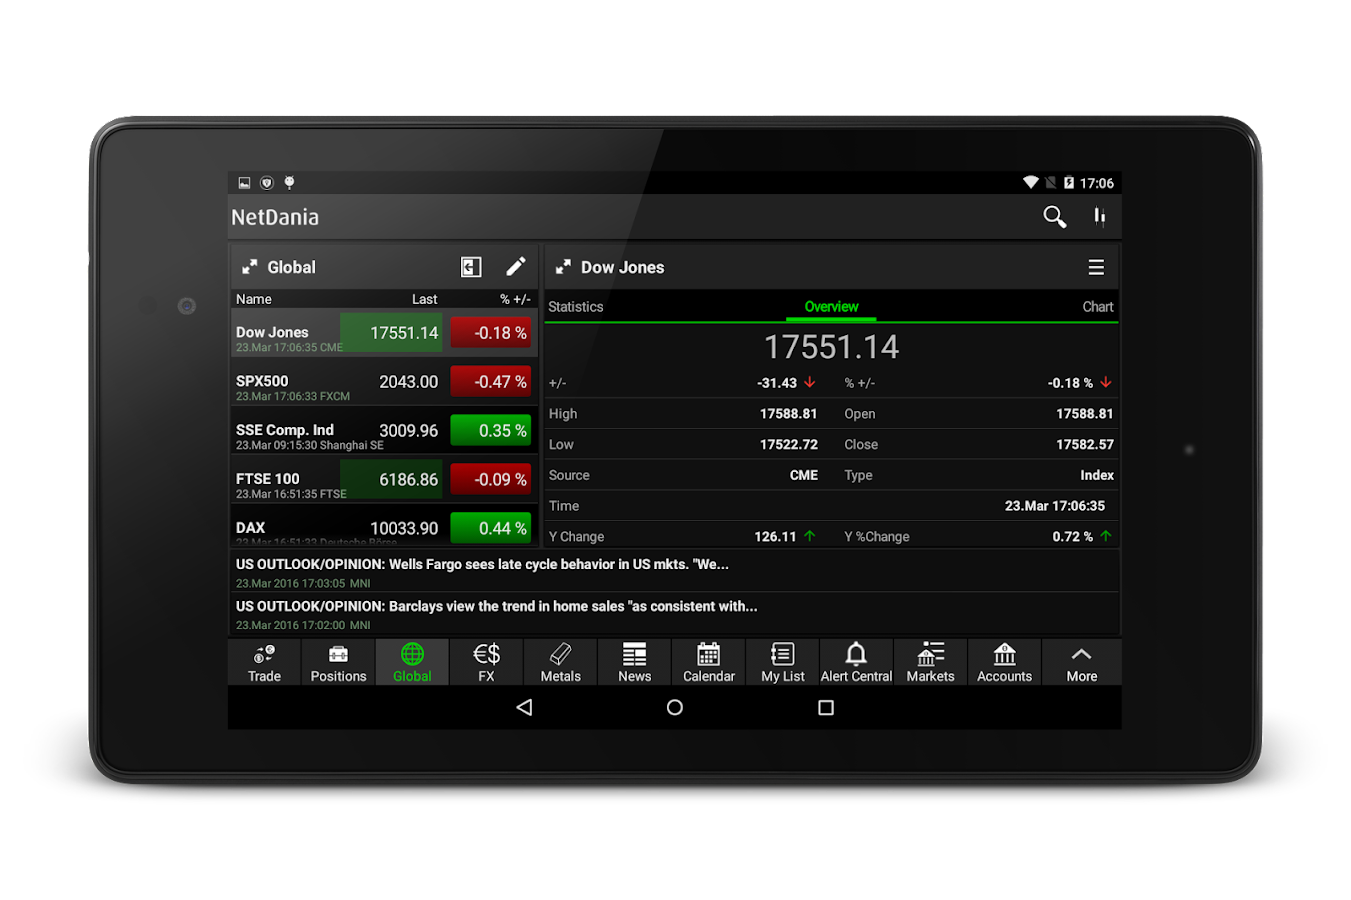 Yahoo Finance Business Finance Stock Market Quotes News Forex Stock  Olive Oil Traders